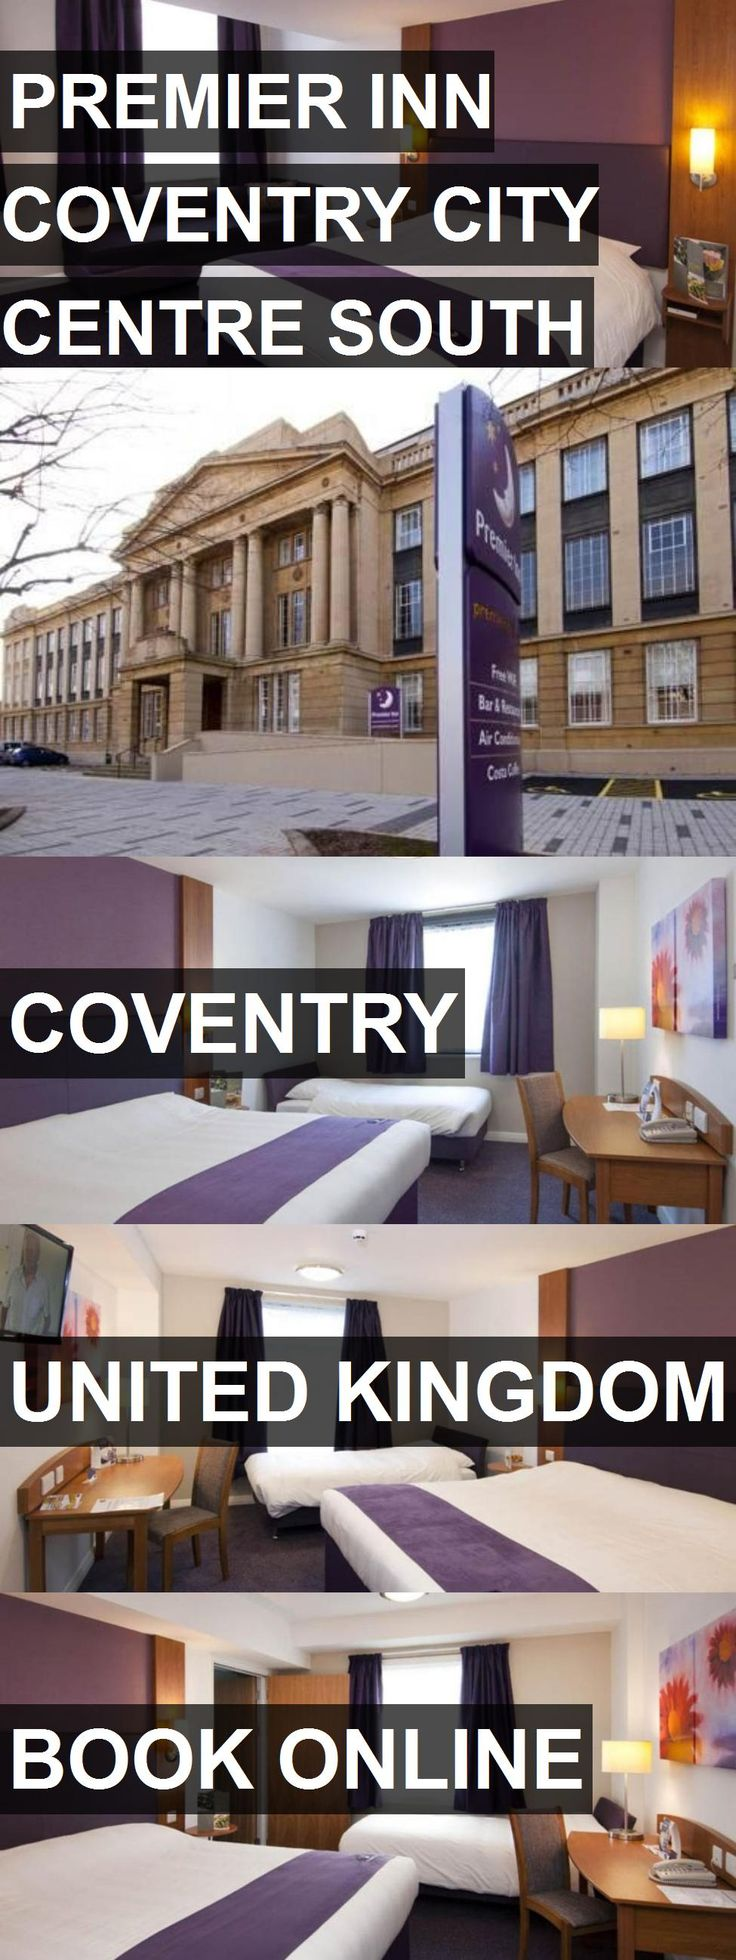 Hotel PREMIER INN COVENTRY CITY CENTRE SOUTH in Coventry, United Kingdom. For more information, photos, reviews and best prices please follow the link. #UnitedKingdom #Coventry #travel #vacation #hotel